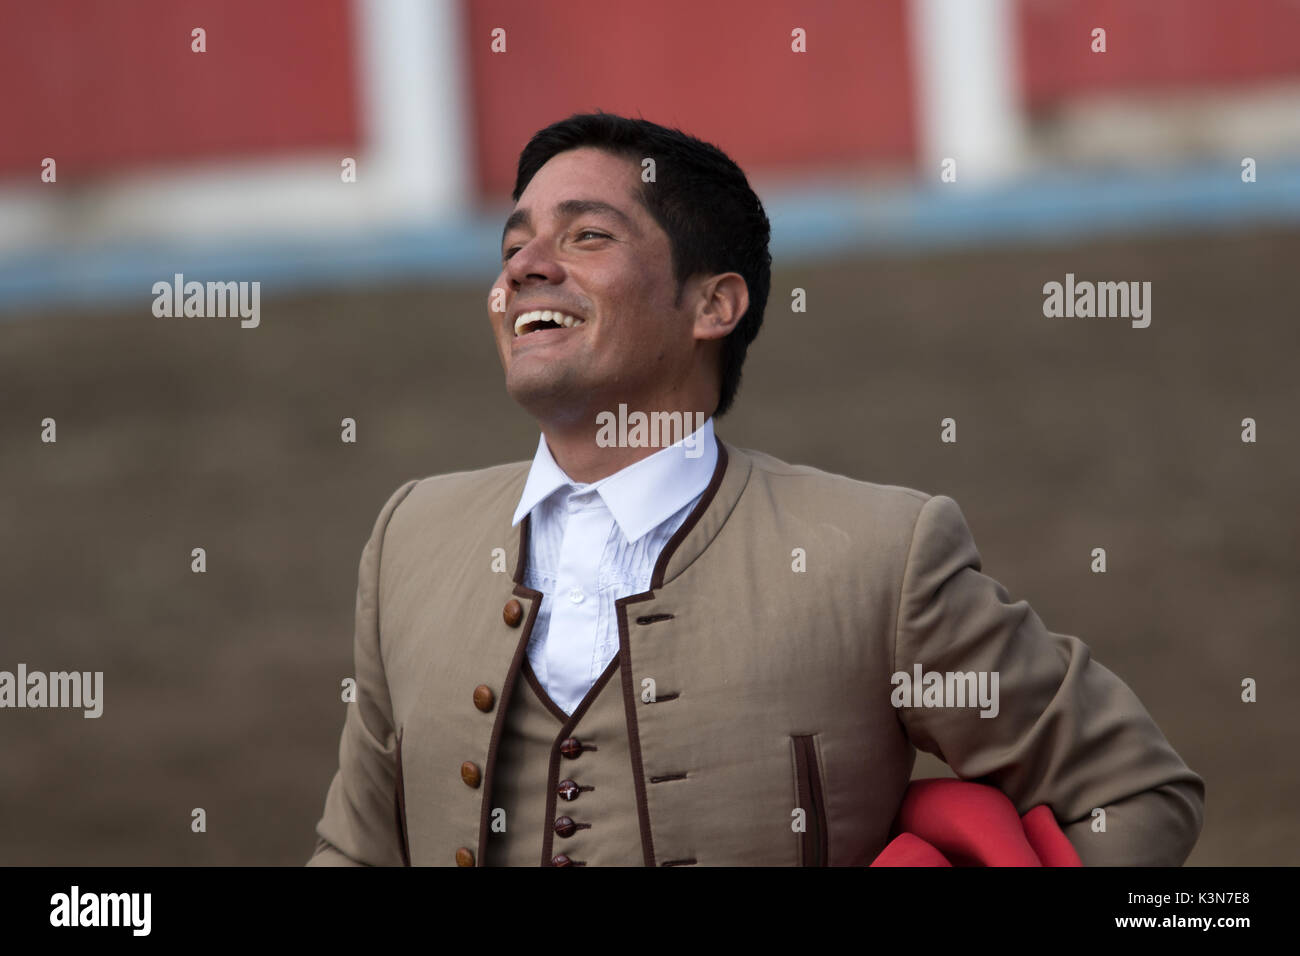 June 18, 2017 Pujili, Ecuador: bullfighter with a happy smile moments after the sacrifice of the bull - Stock Image